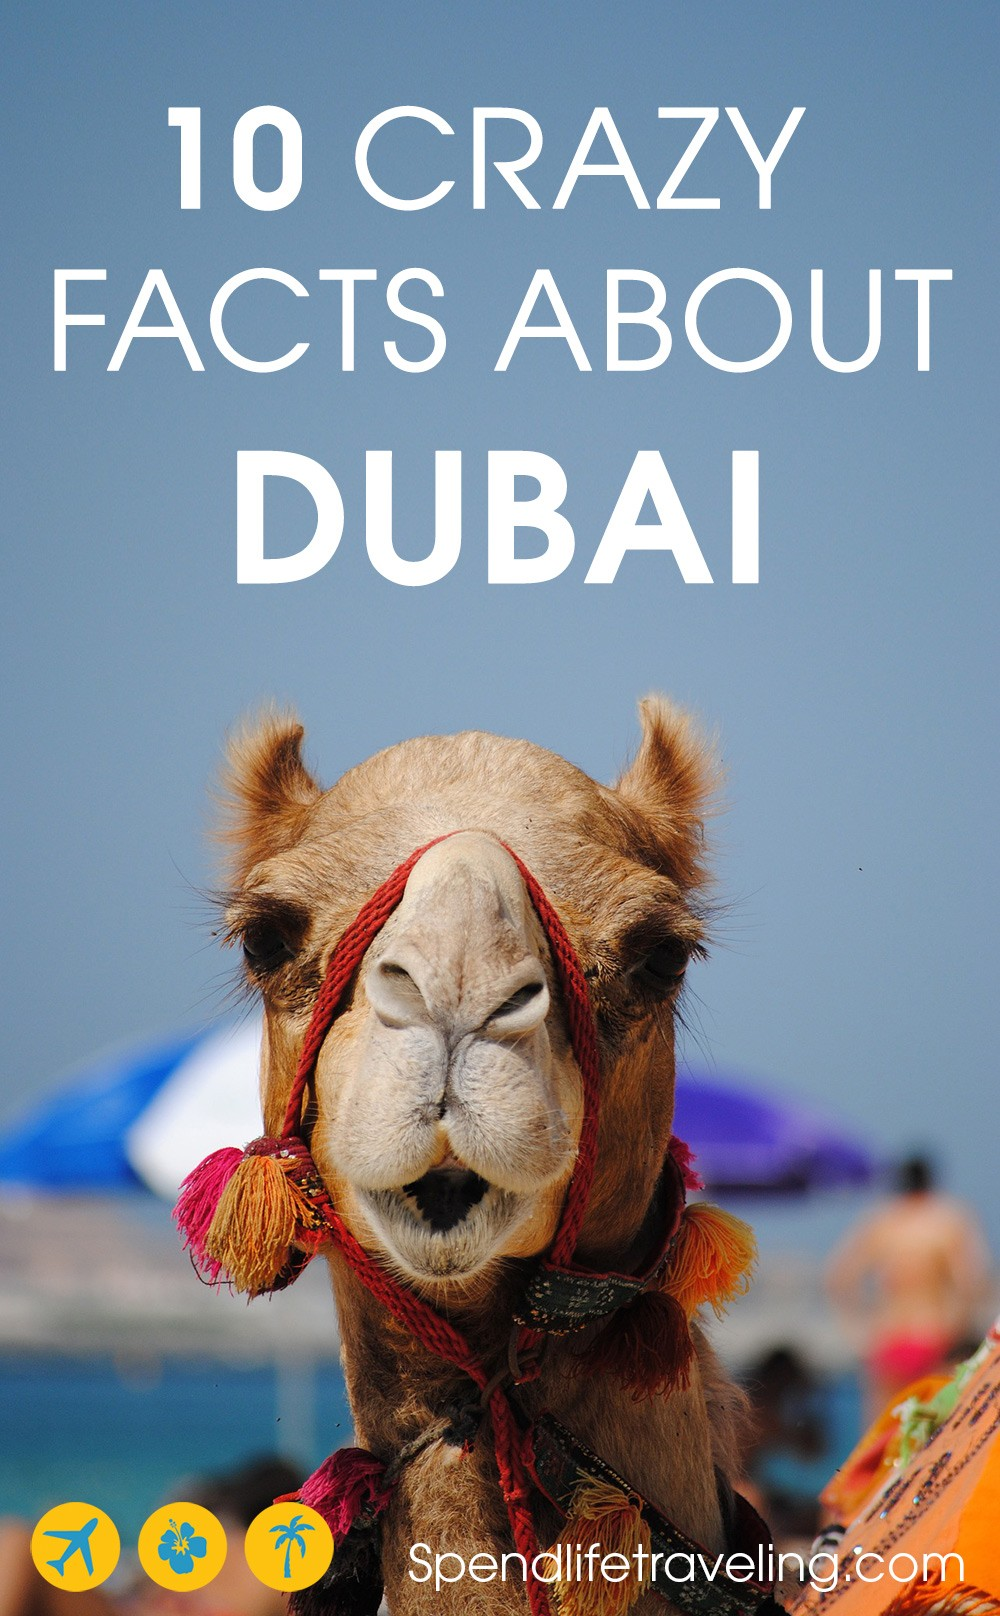 10 Facts about #Dubai: some interesting, some crazy and some shocking things to know about Dubai! #crazyfacts #UAE #emirates